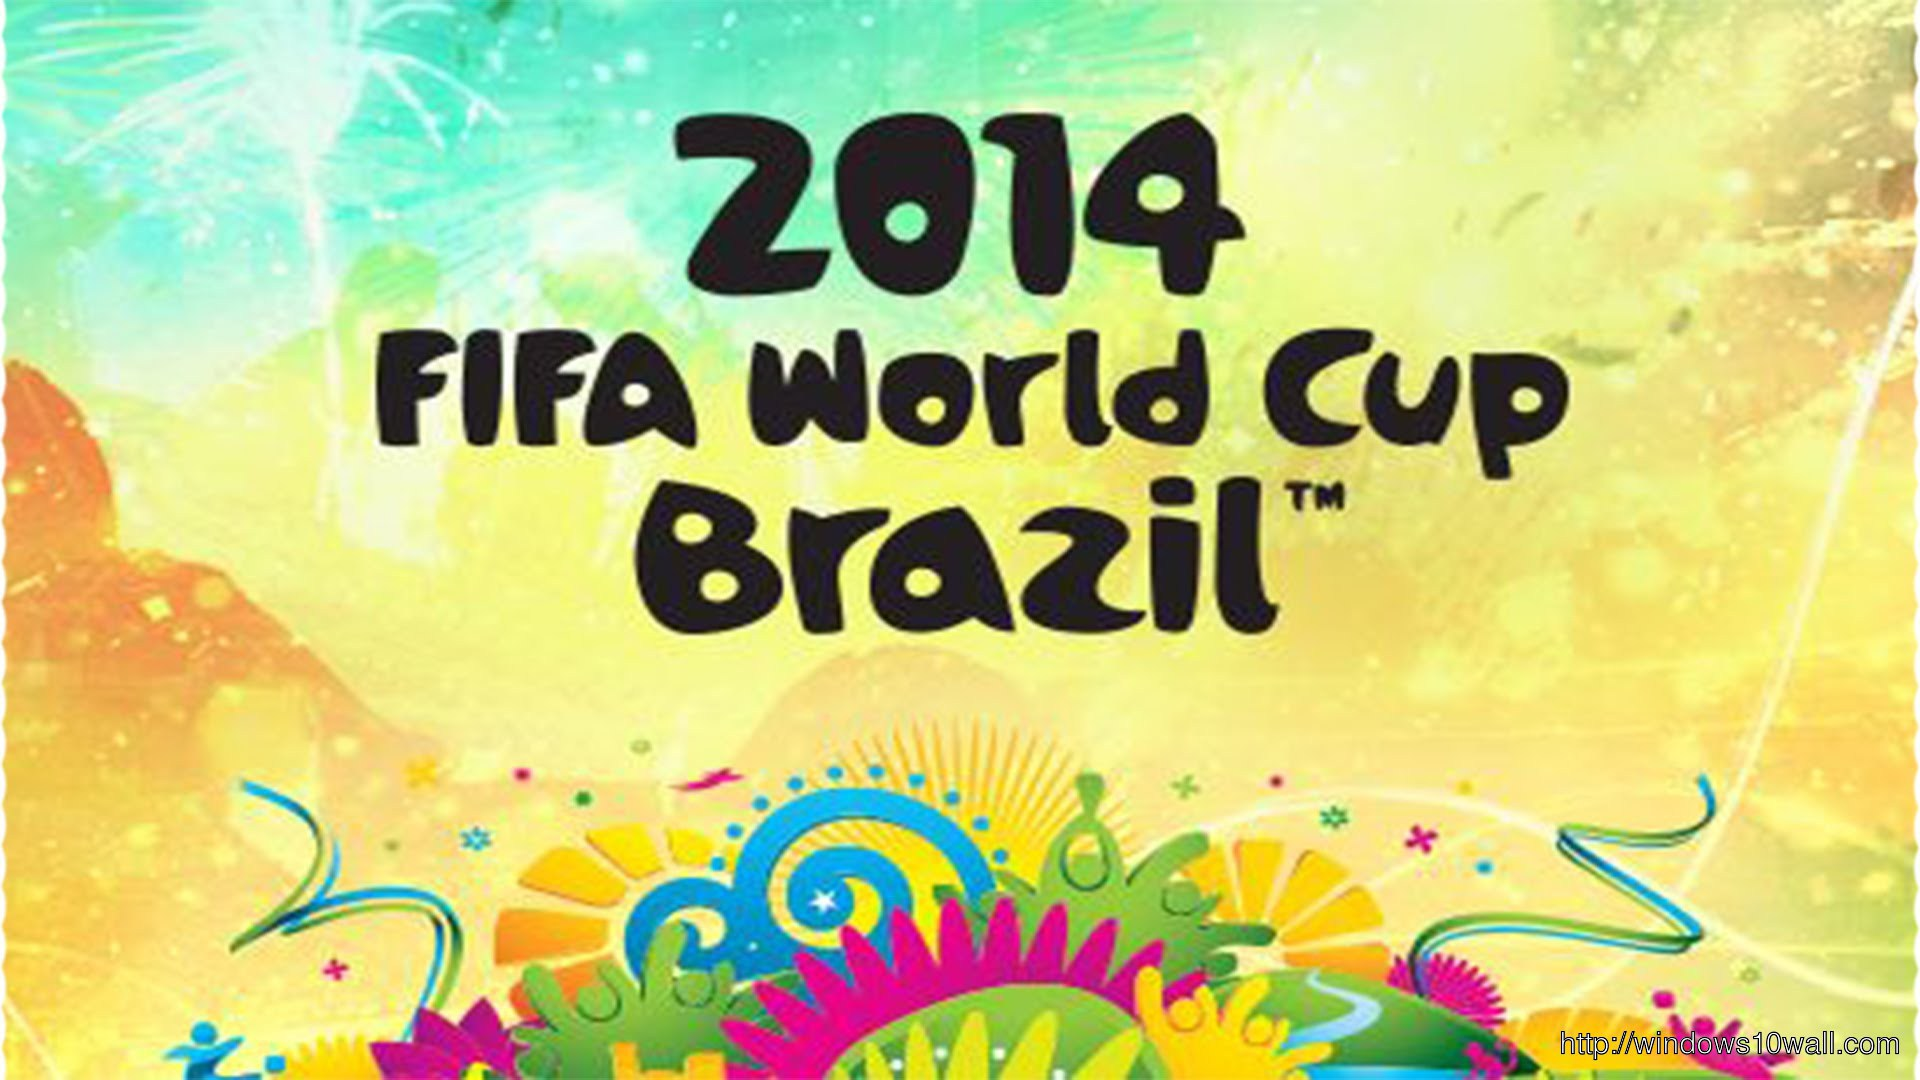 2014 FIFA World Cup Brazil Wallpaper